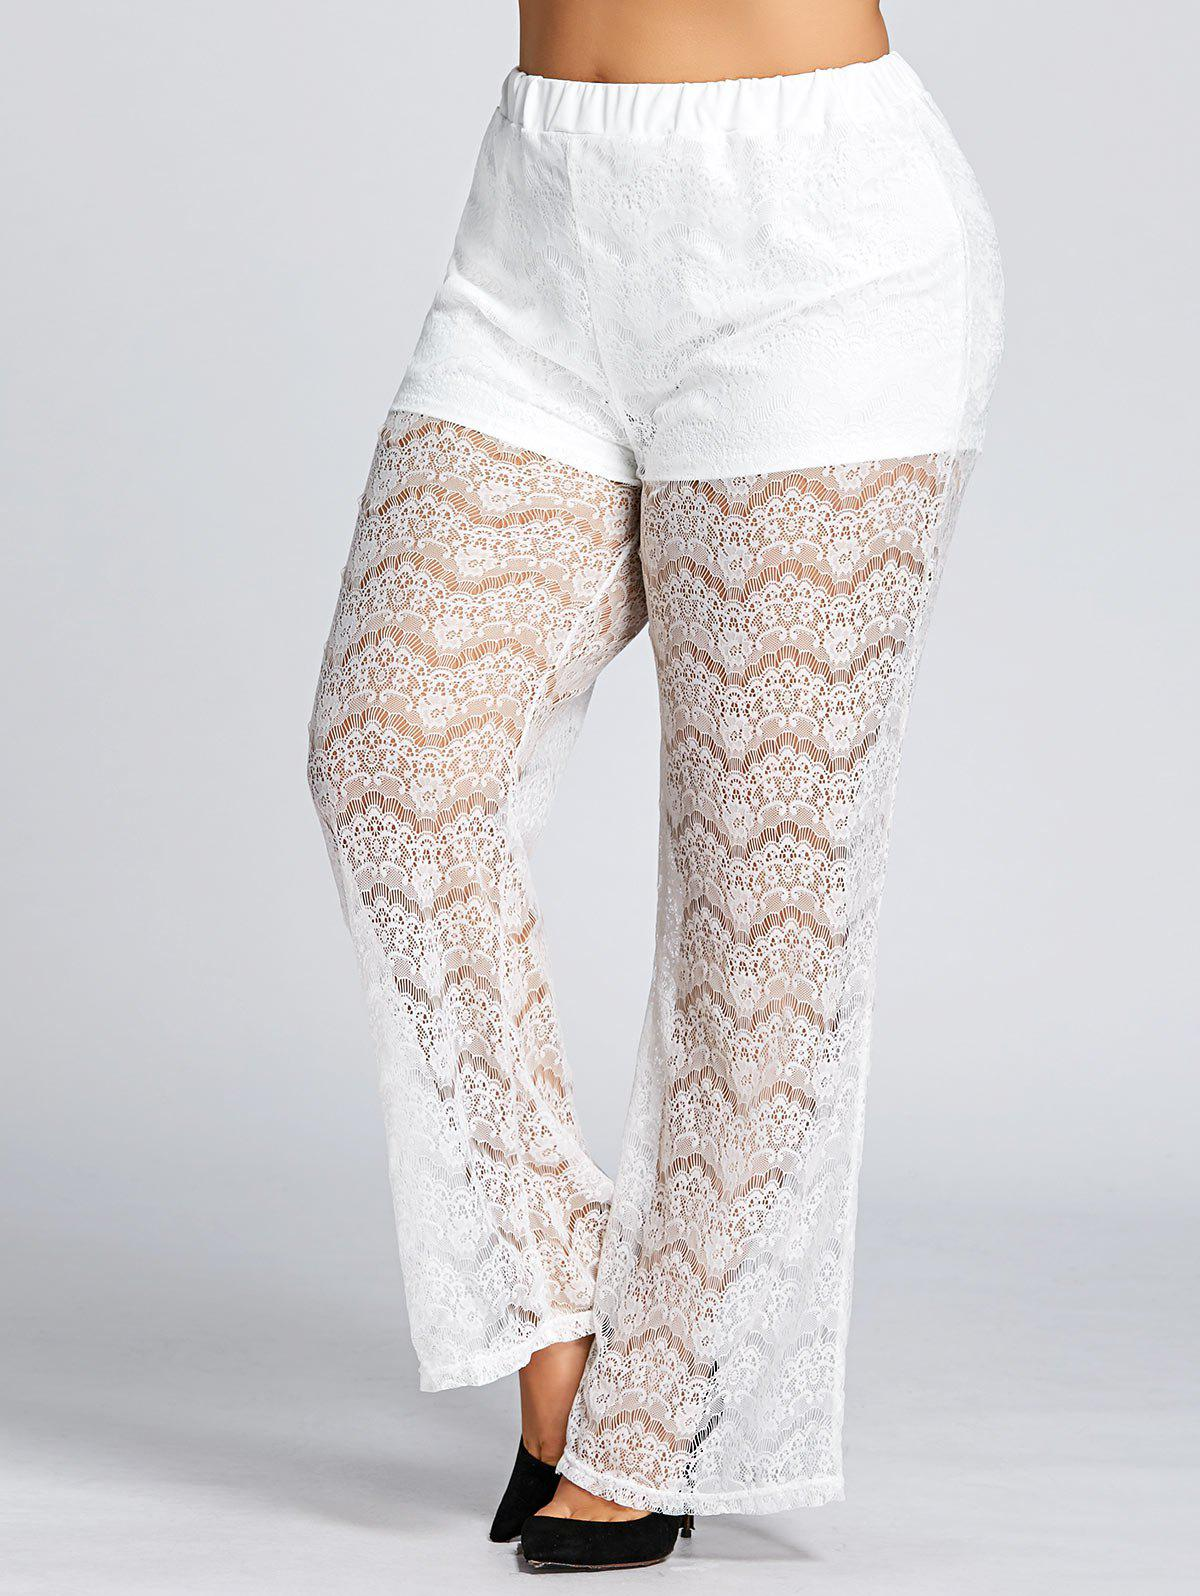 Cheap High Waist Plus Size Sheer Lace Pants